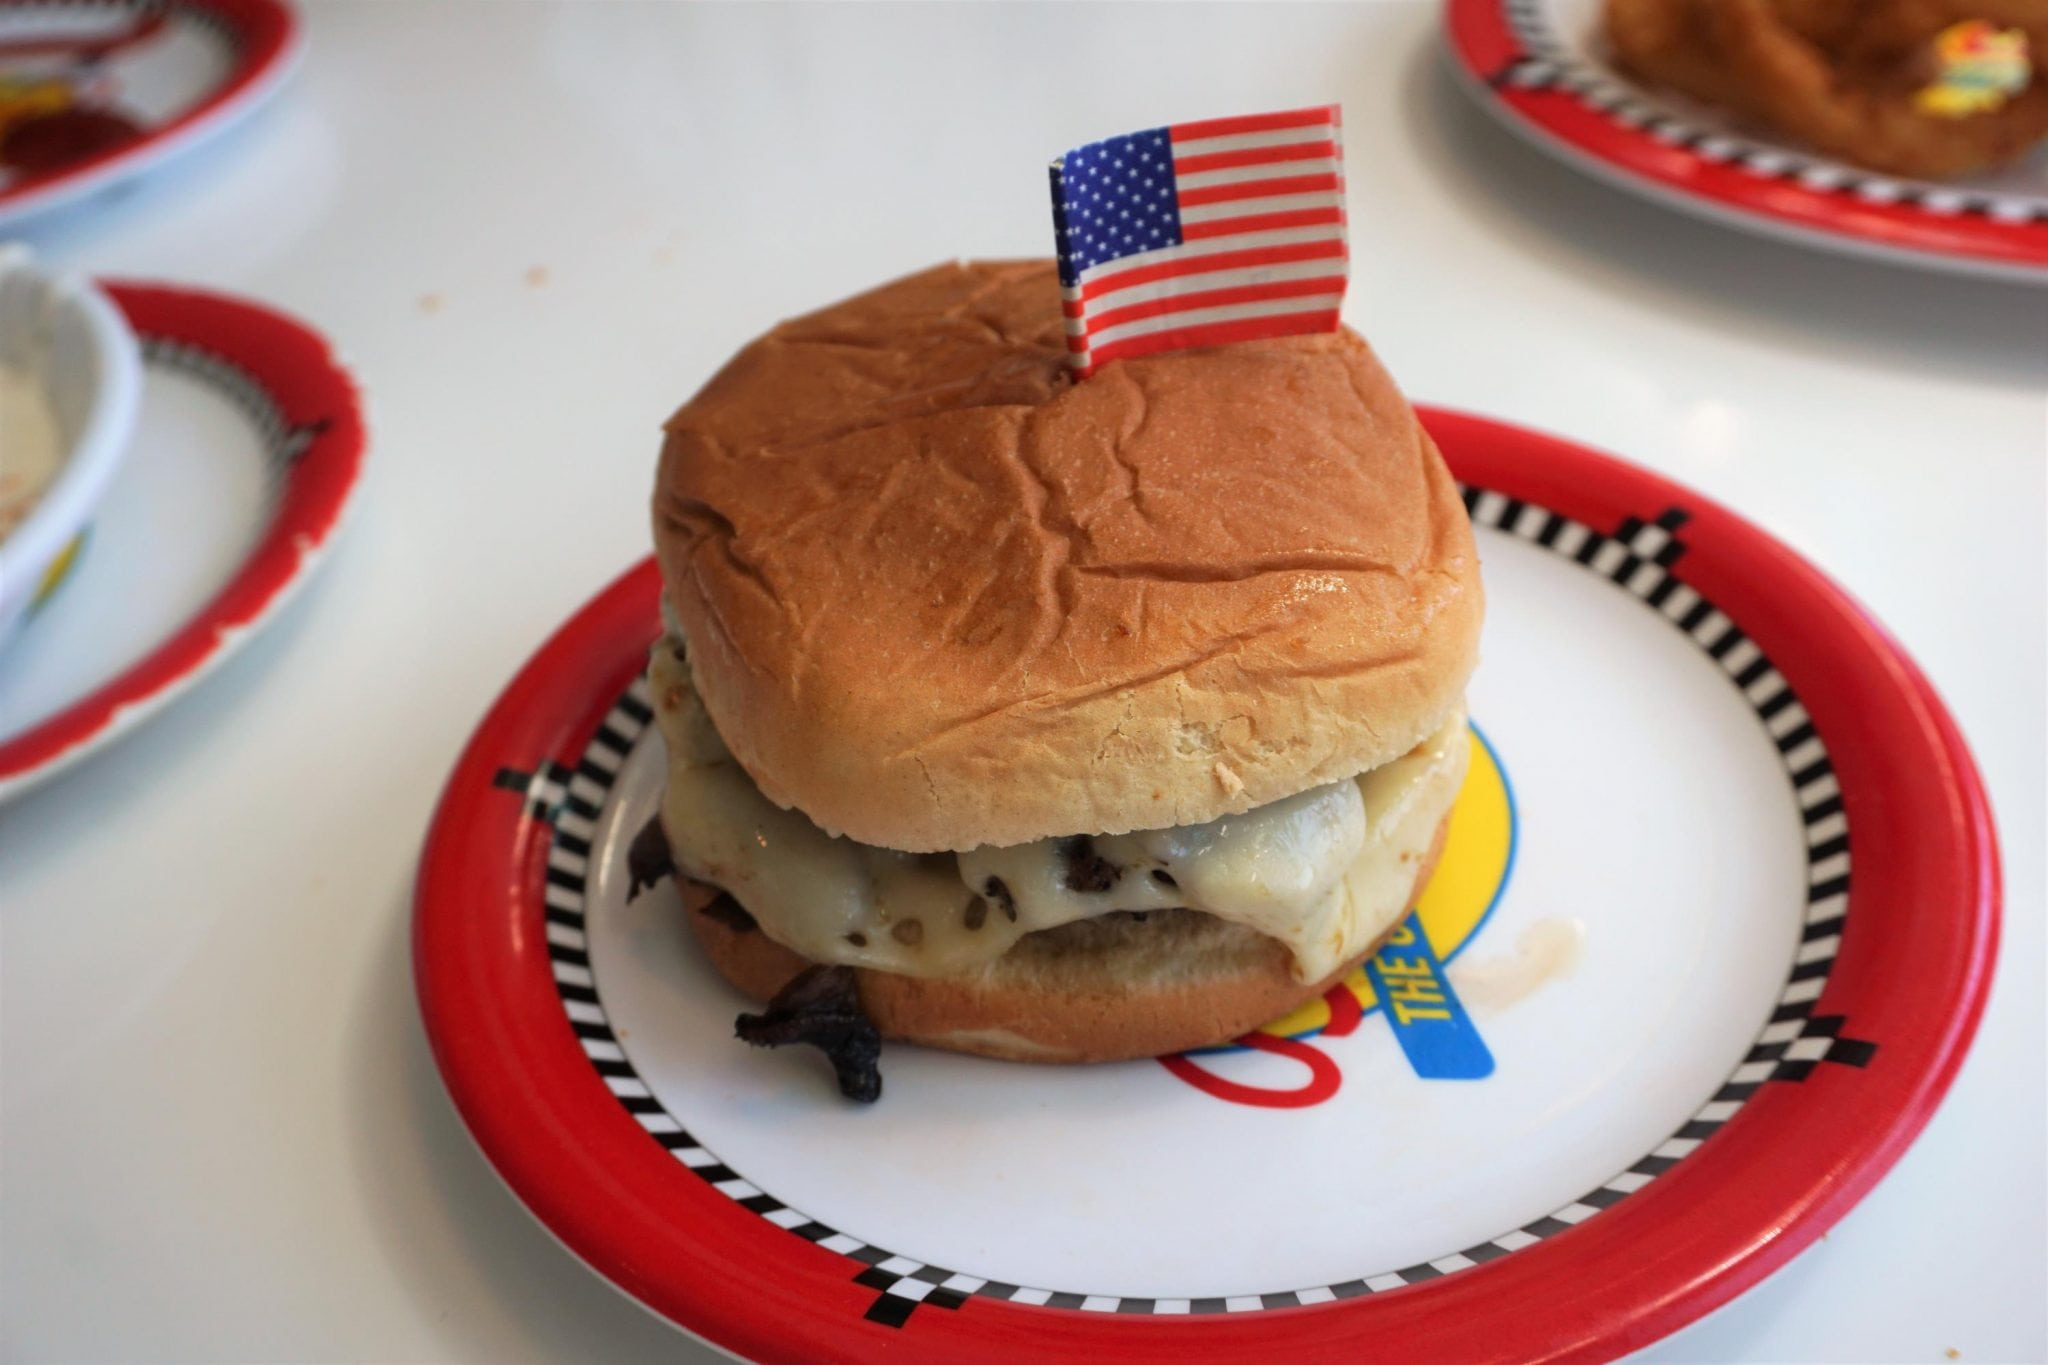 Double Burger at Johnny Rockets on Majesty of the Seas